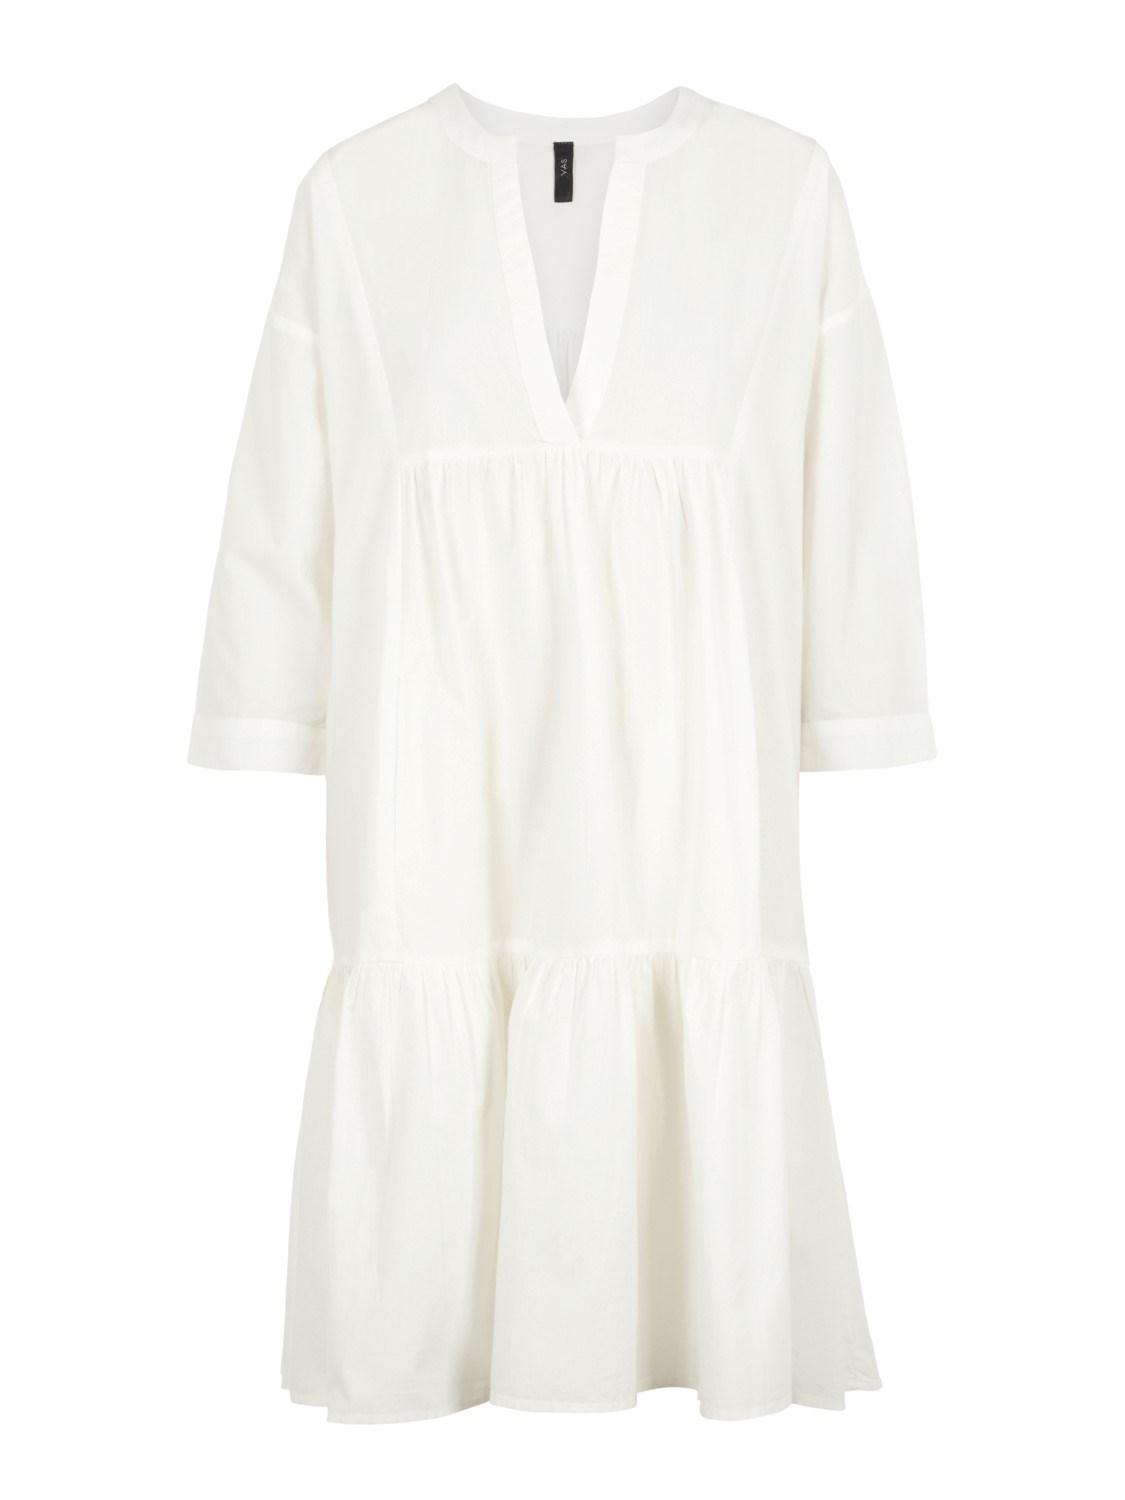 YASMERIAN 3/4 DRESS - ICONS S. STAR WHITE